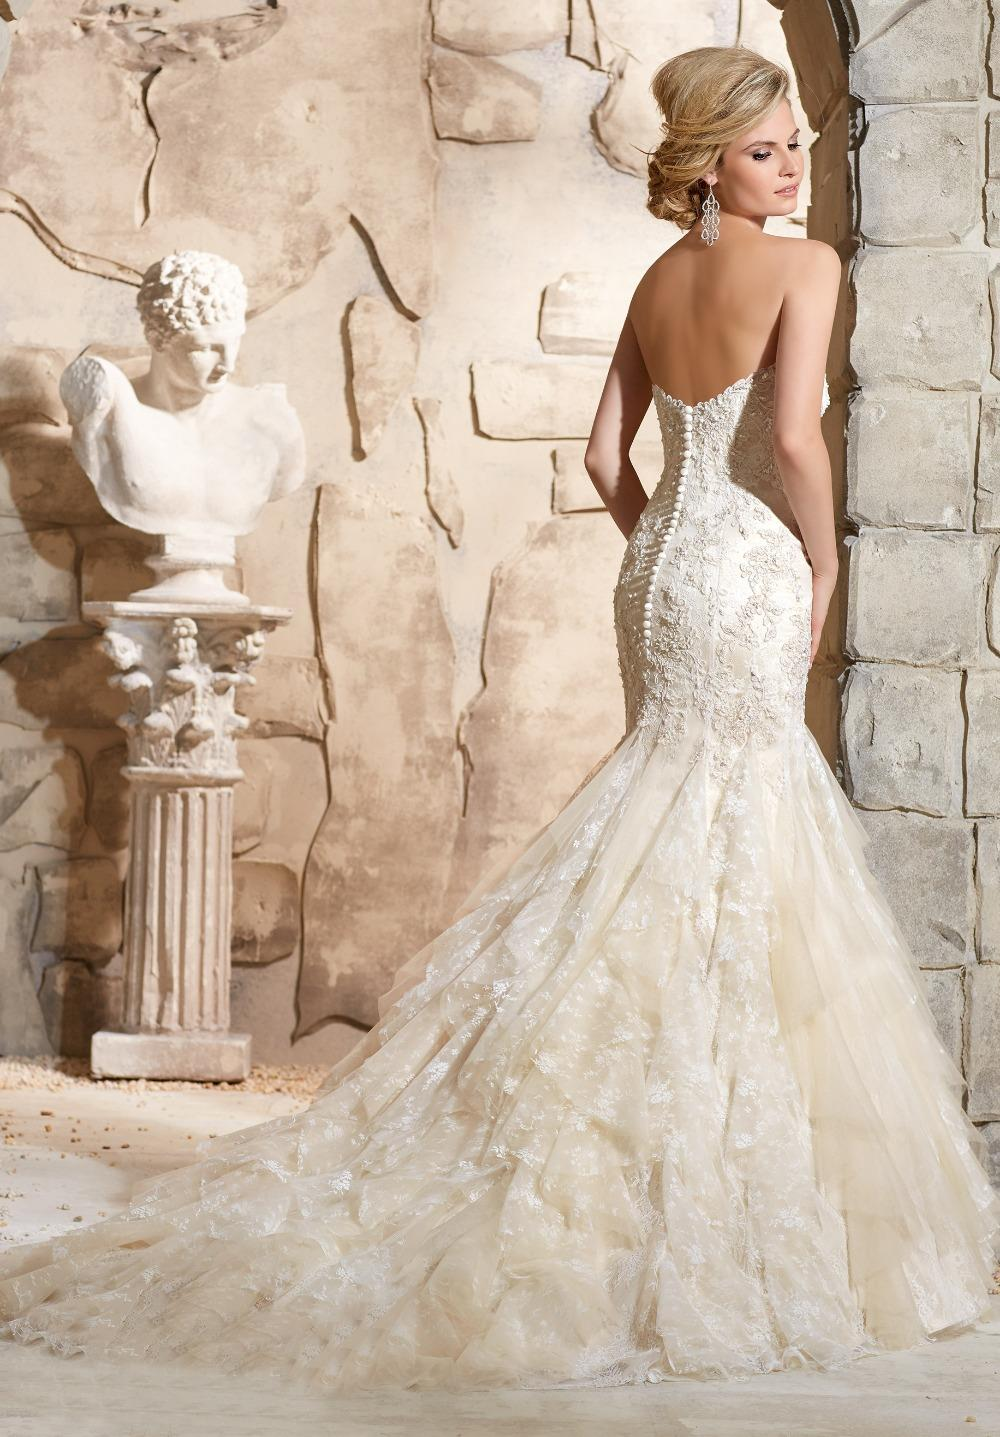 Stunning ivory champagne wedding dress ideas styles for Ivory champagne wedding dress